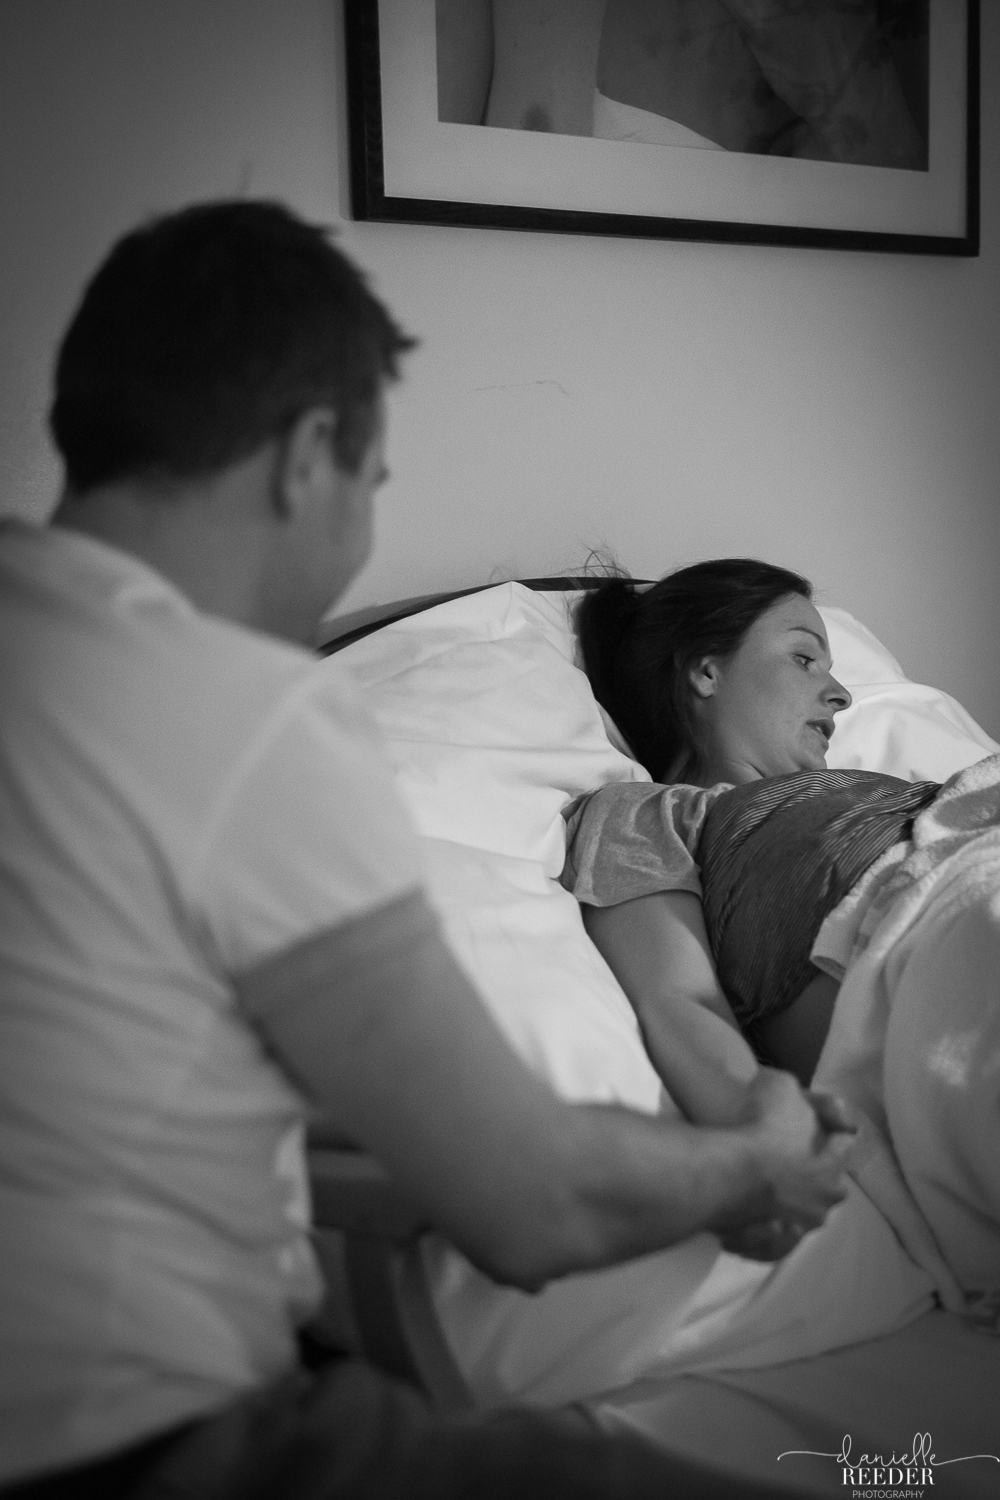 Somerset-Birth-Story-Documentary-Photography-1.jpg